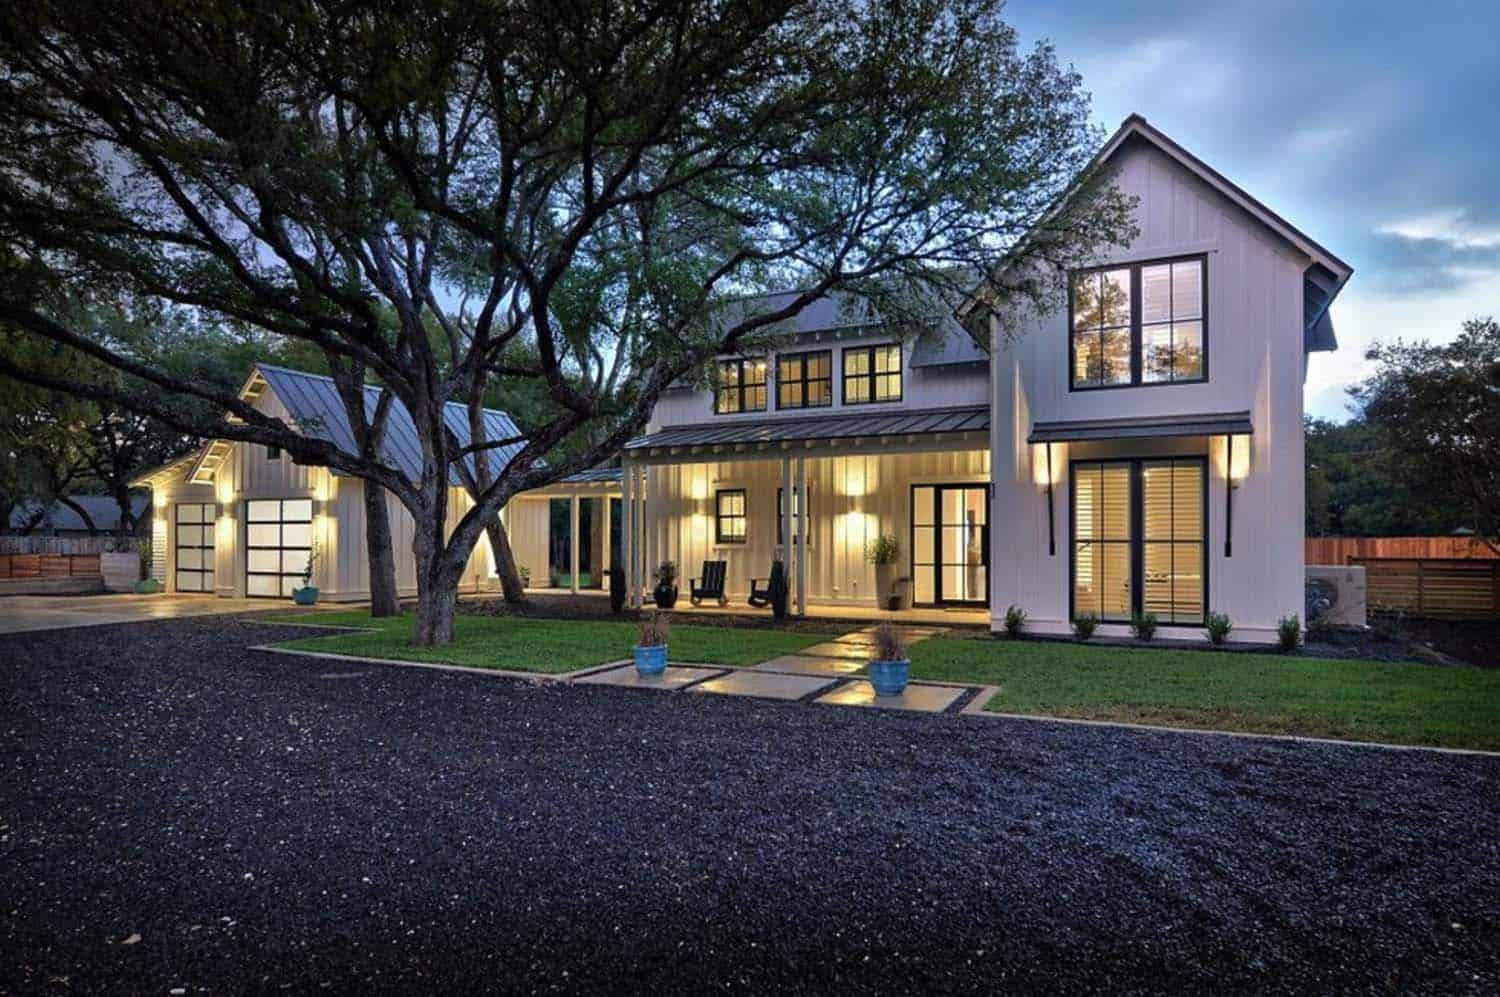 Modernized texas farmhouse filled with eye catching details for House plans farmhouse modern